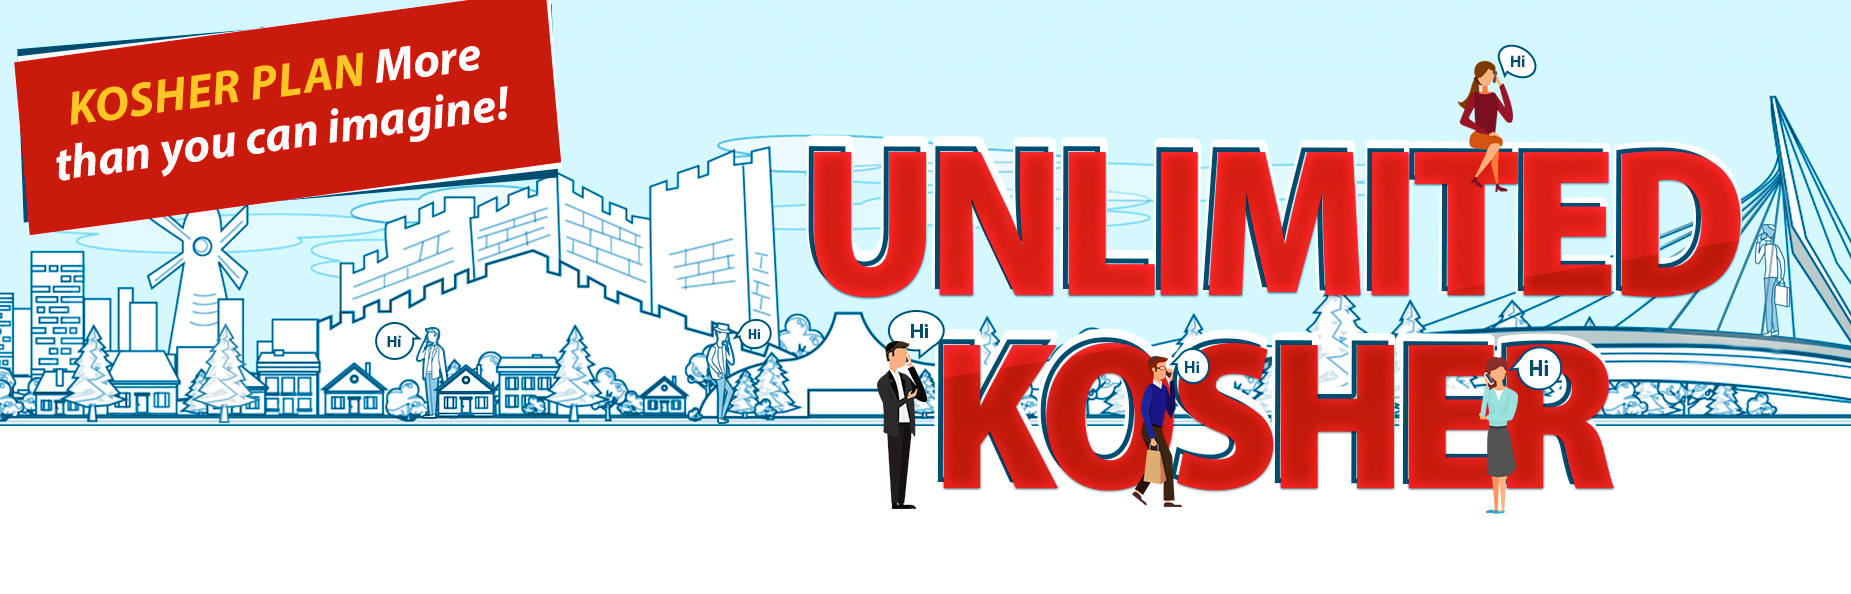 Students-UnlimitedKosher-Banner